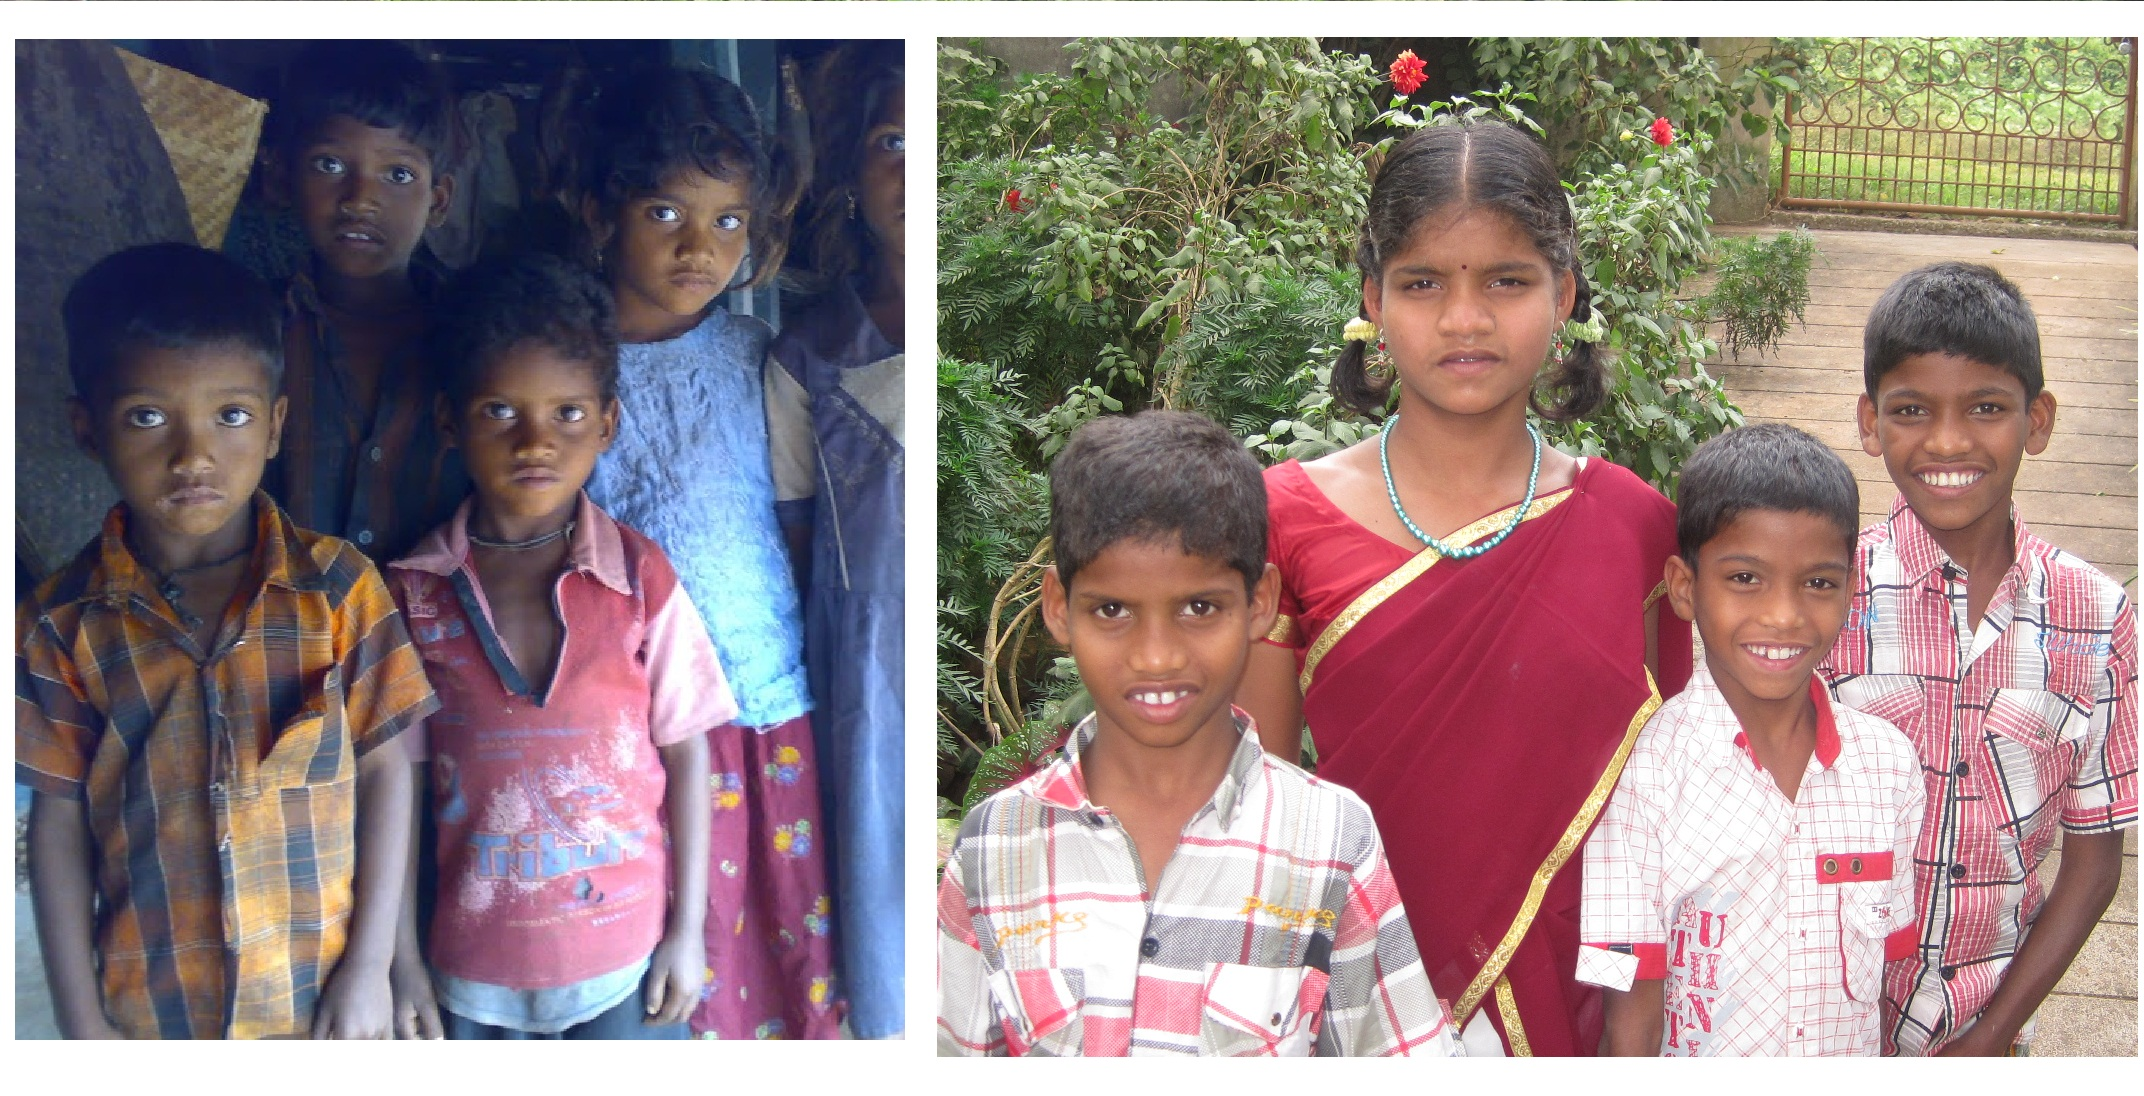 Some Tribal orphan children from remote tribal village near Araku rescued by UFC